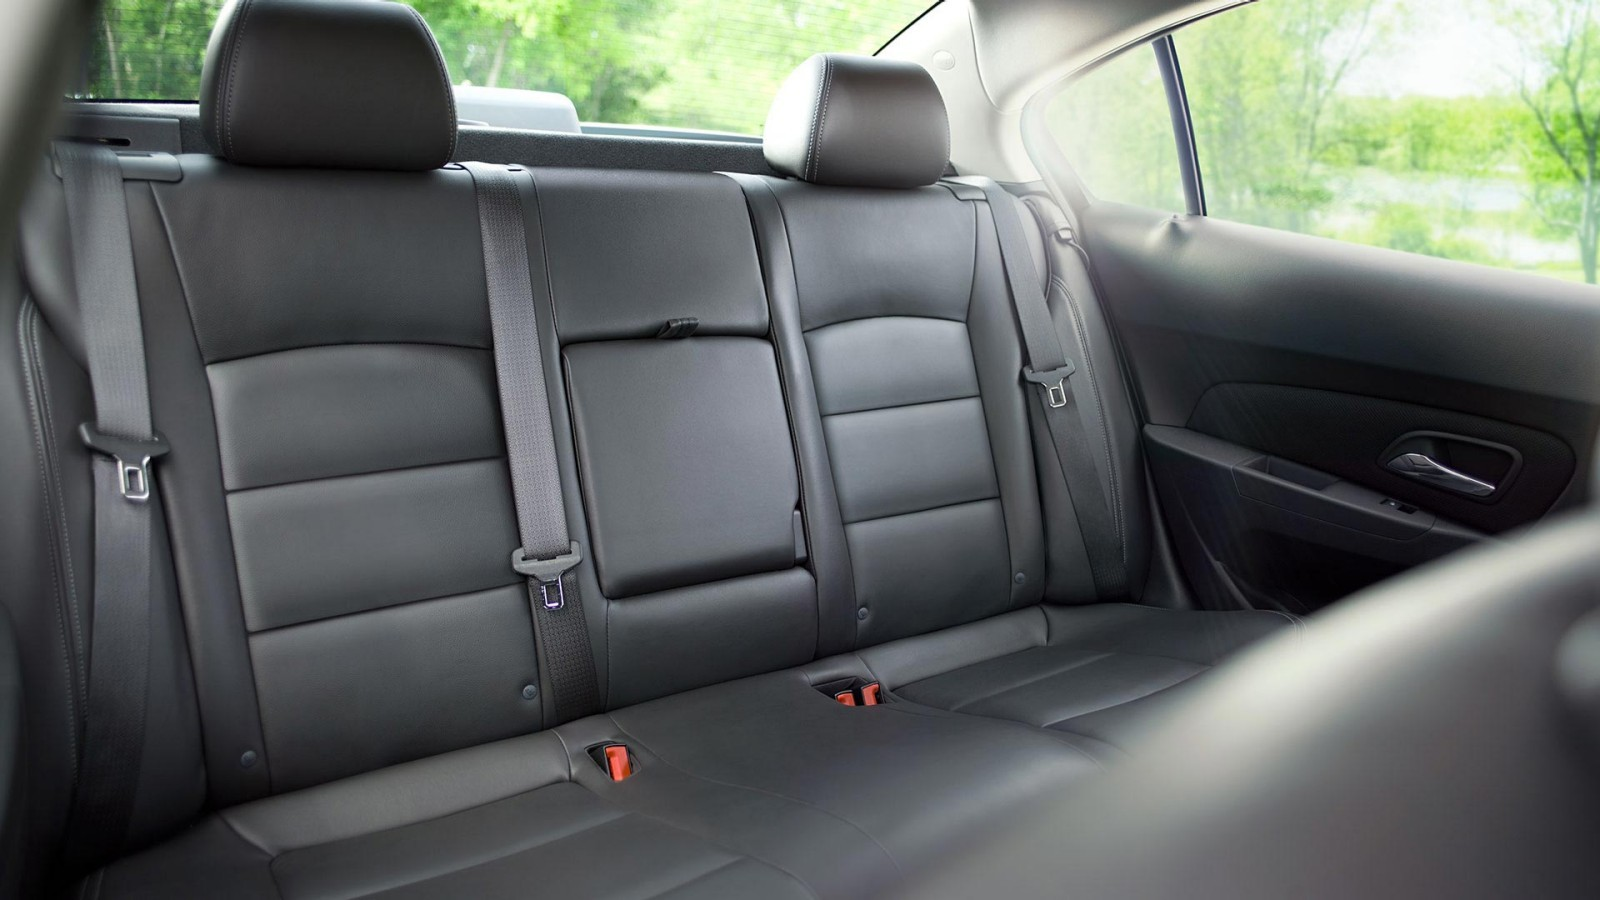 2016 Chevy Cruze Limited Seating